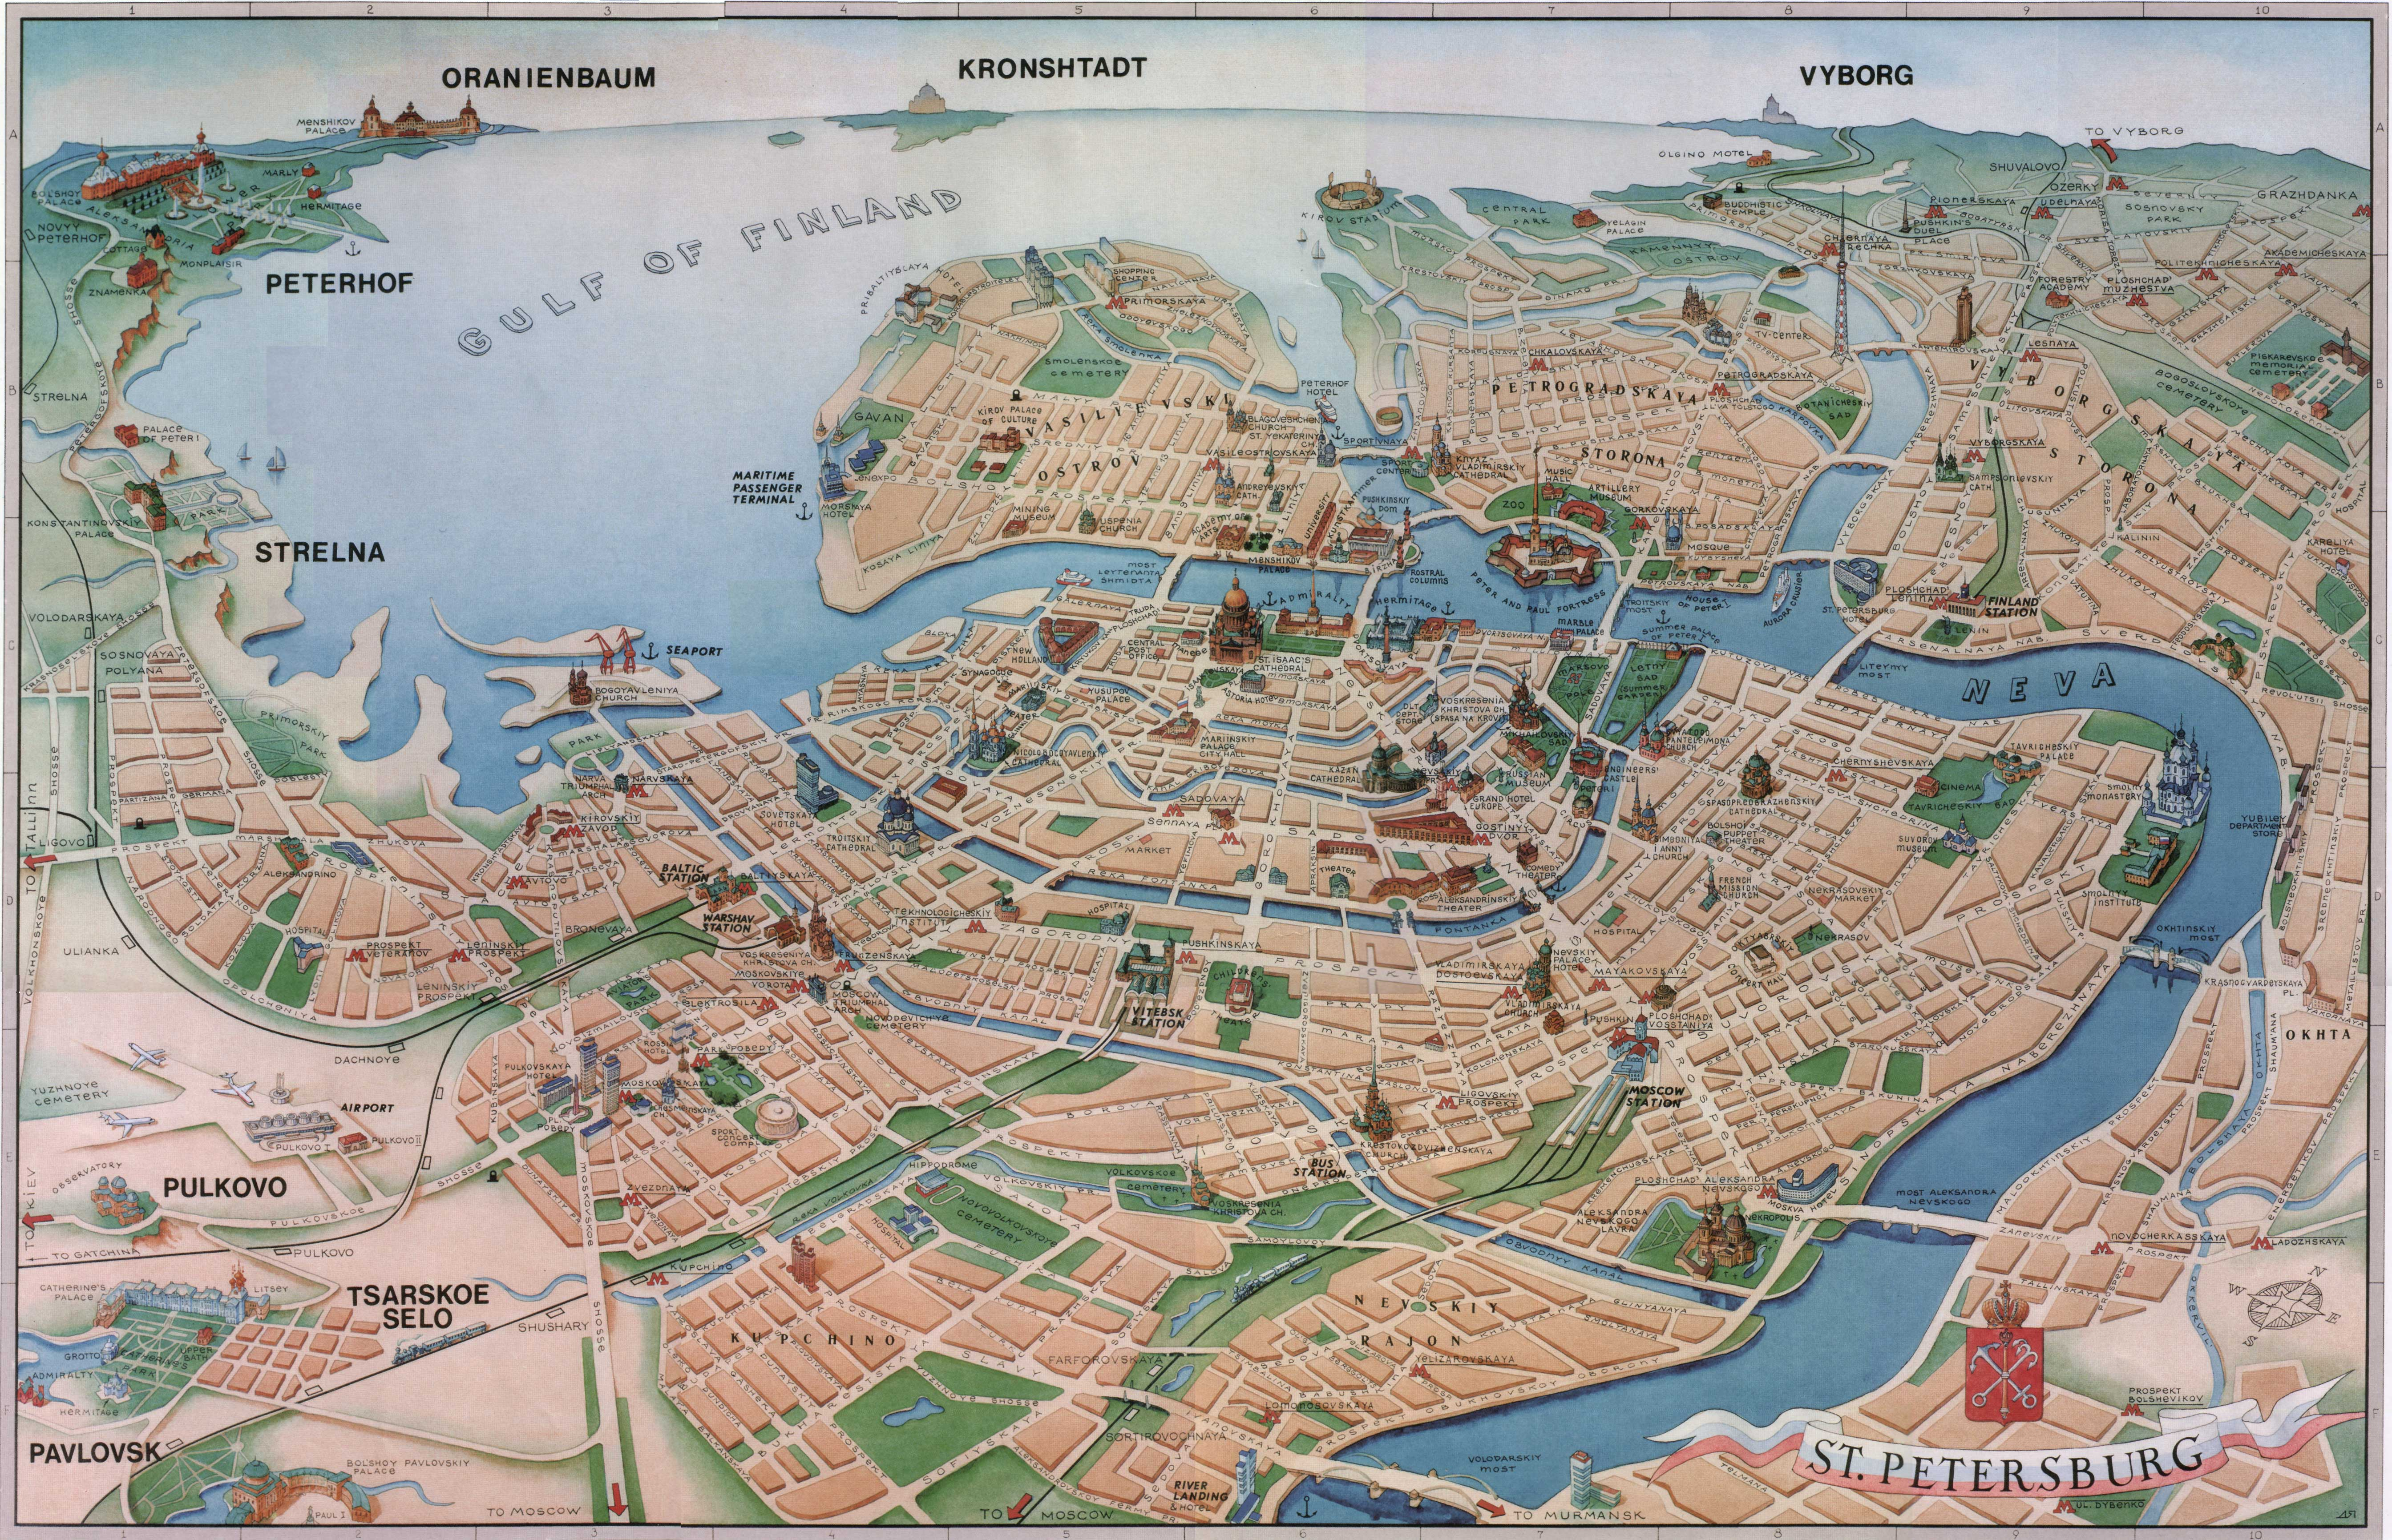 St petersburg tourist map see map details from escapetravel spb ru